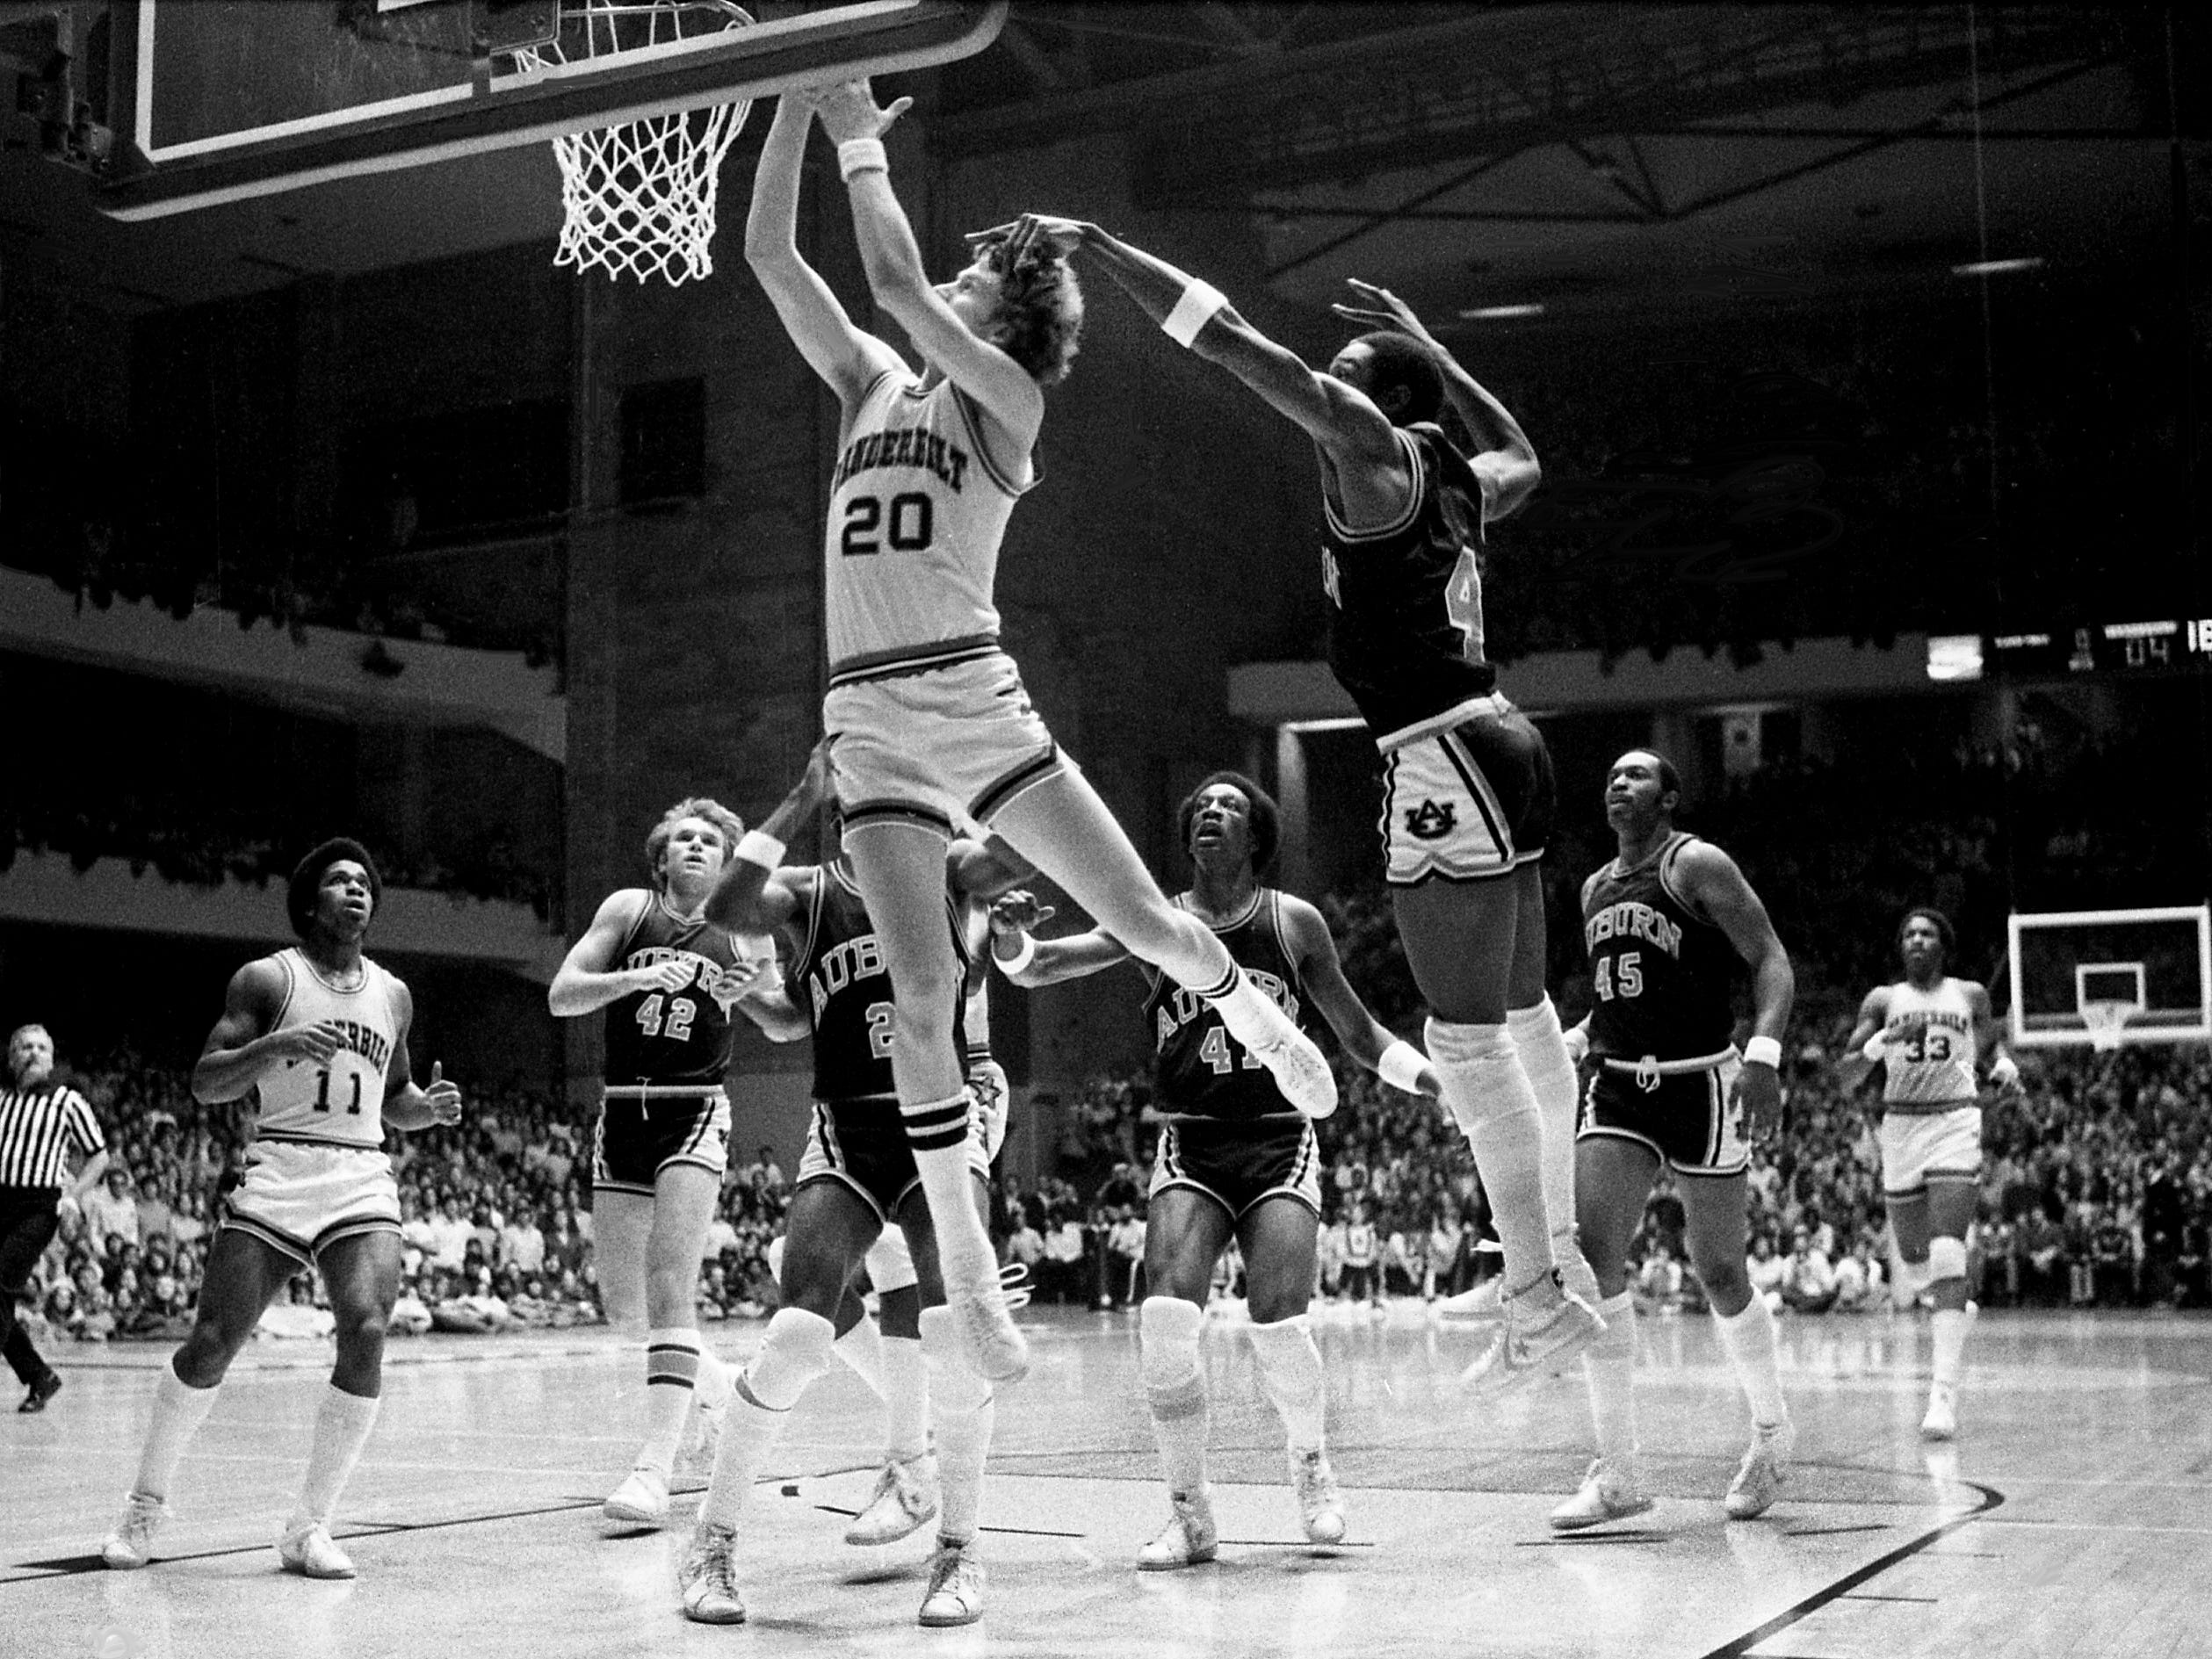 Vanderbilt sophomore forward Mike Rhodes (20) attempts a layup as Auburn's close-guarding Lewis Card takes a swipe at Memorial Gym Jan. 27, 1979. Rhodes ended up with 14 points in helping the Commodores to a 66-59 victory over Auburn in a major SEC battle.